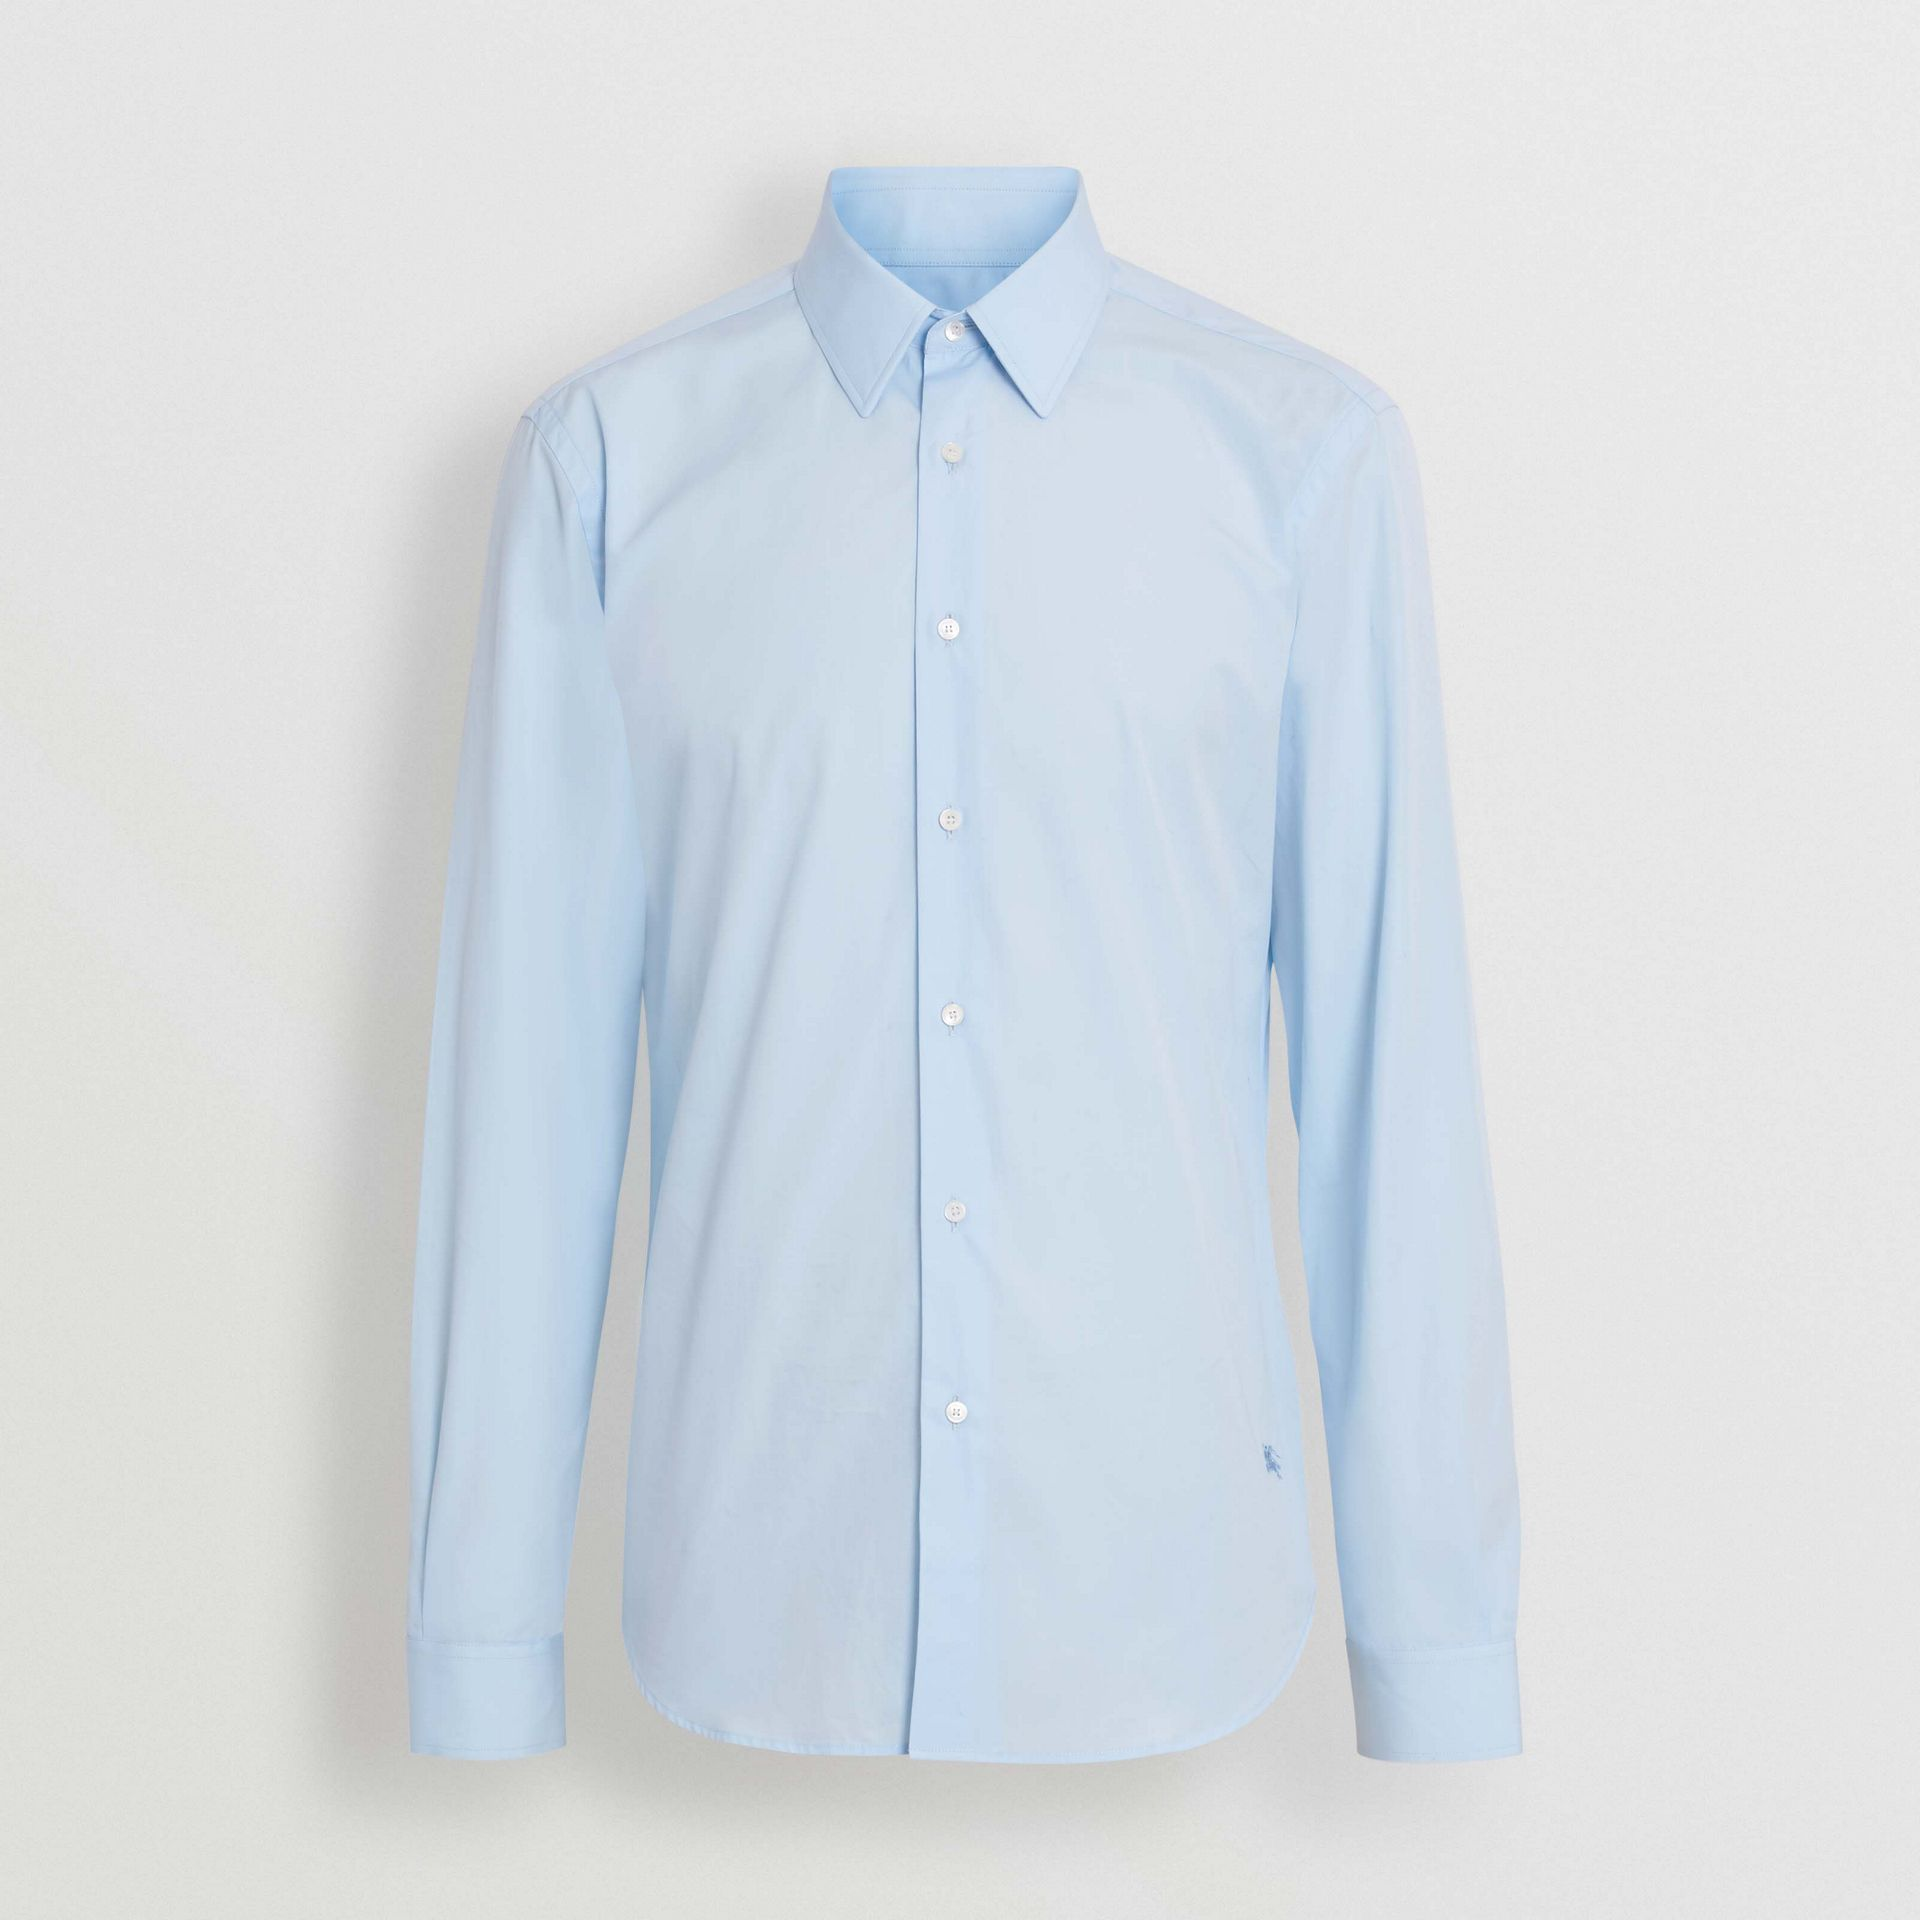 Slim Fit Cotton Poplin Shirt in City Blue - Men | Burberry - gallery image 3